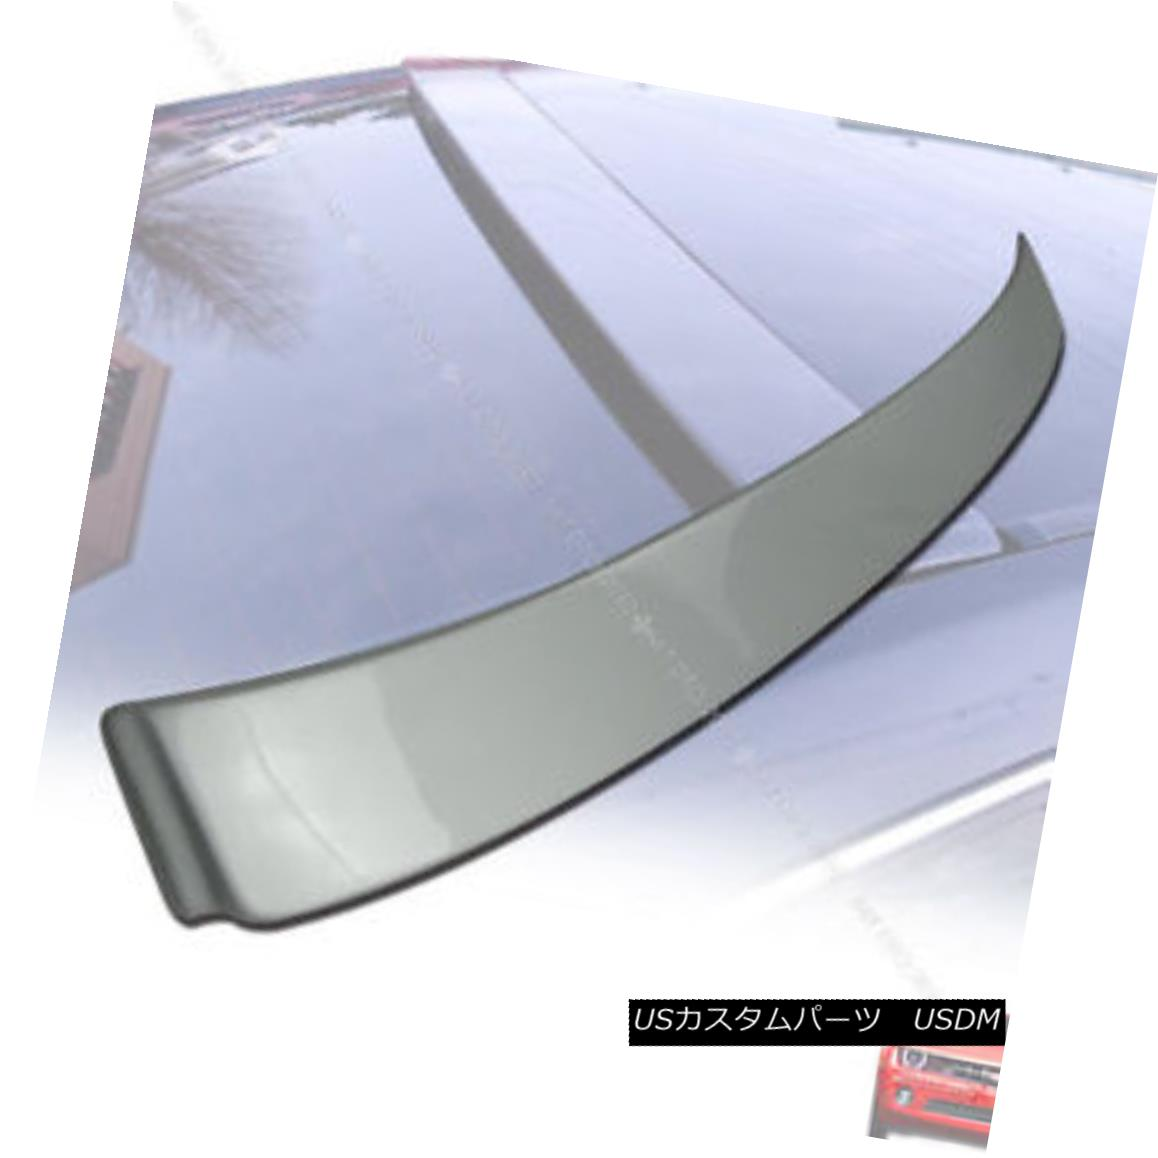 エアロパーツ FOR J32 TEANA Window Roof Spoiler Painted 09 12 Color #KH3 § FOR J32 TEANAウインドルーフスポイラー塗装09 12カラー#KH3